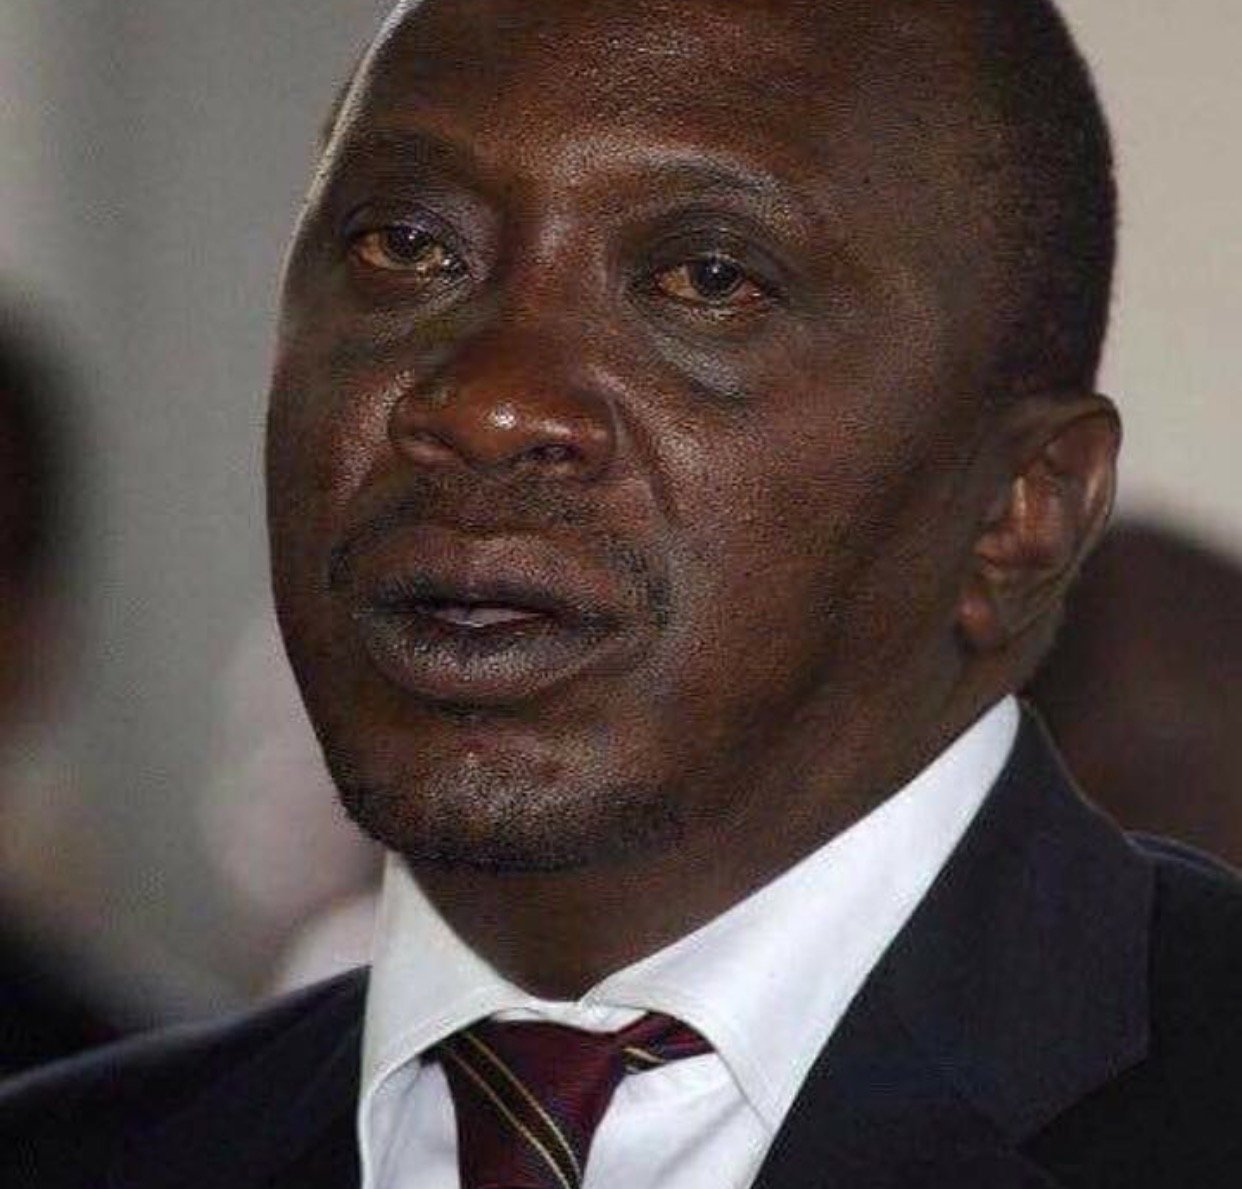 Kenyans on social media unleash hilarious memes after president uhuru kenyatta failed to attend the presidential